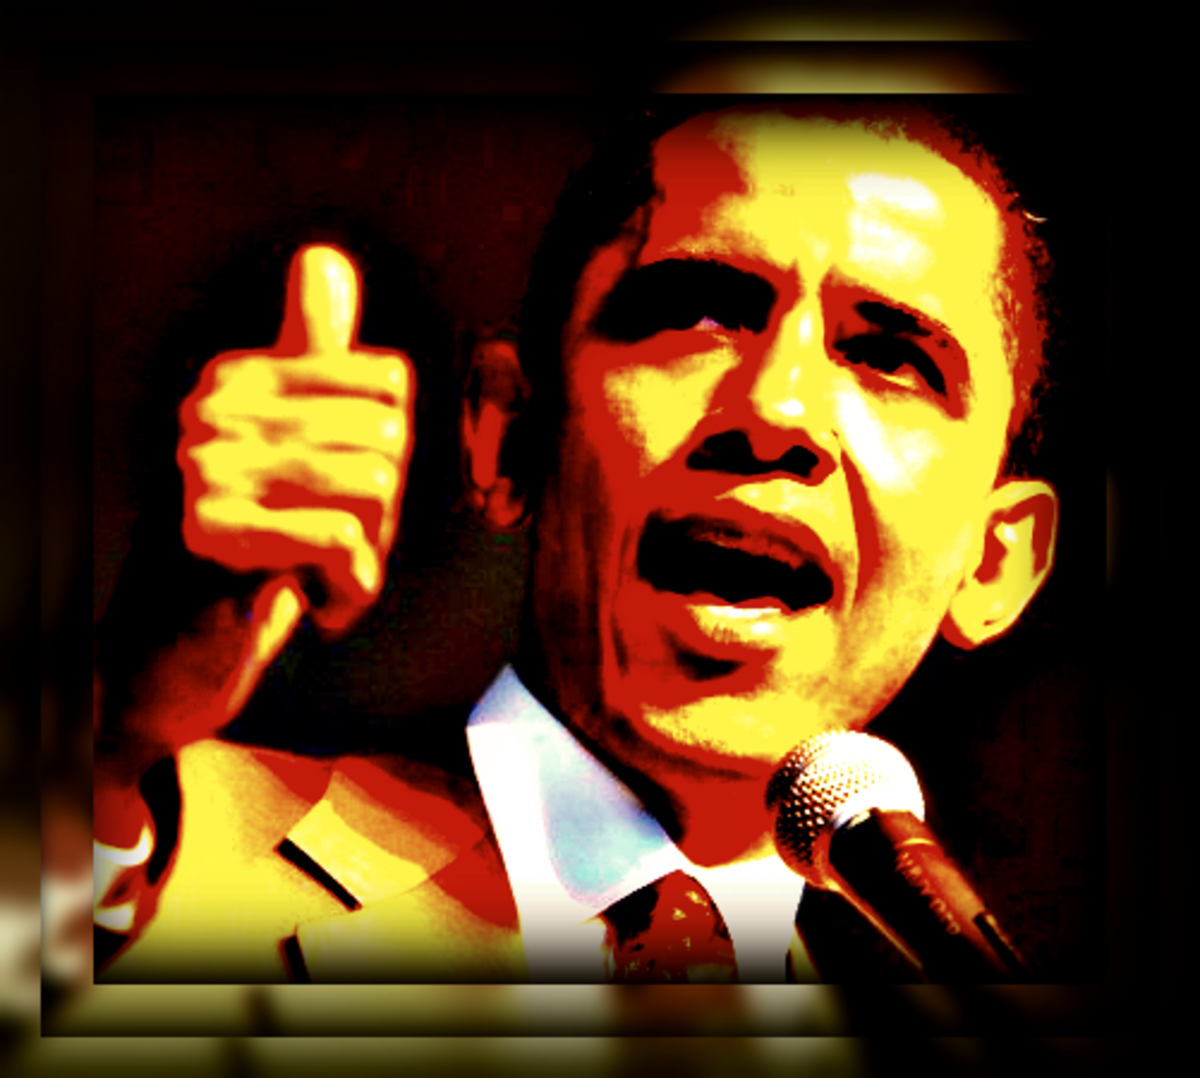 Barack Obama clip art -- thumbs-up